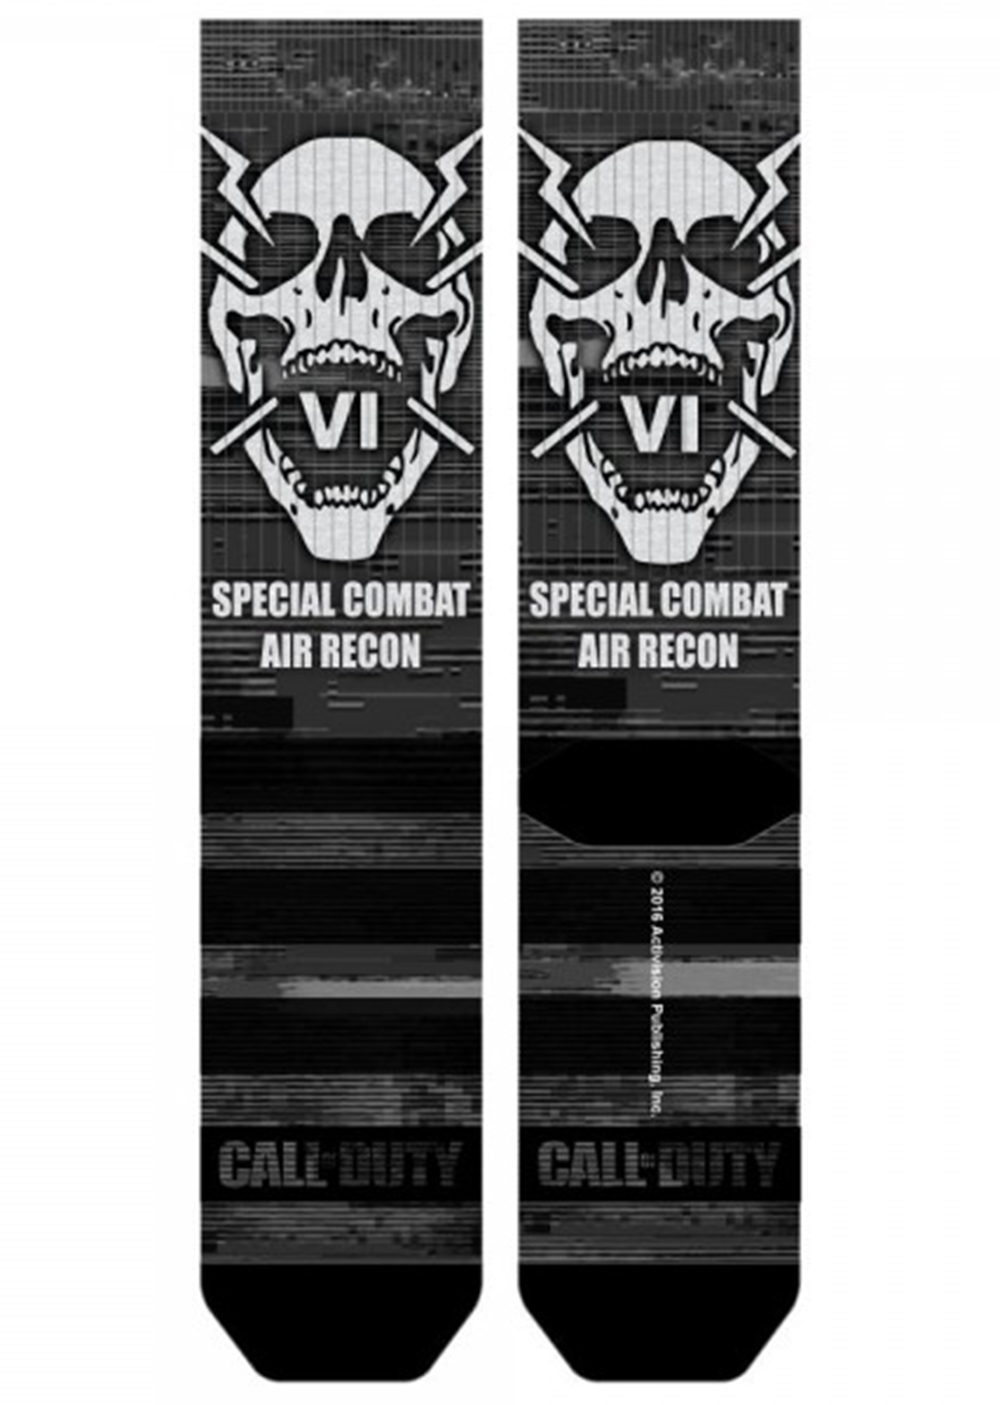 Call of Duty Infinite Warfare S.C.A.R. Sublimated Crew Socks